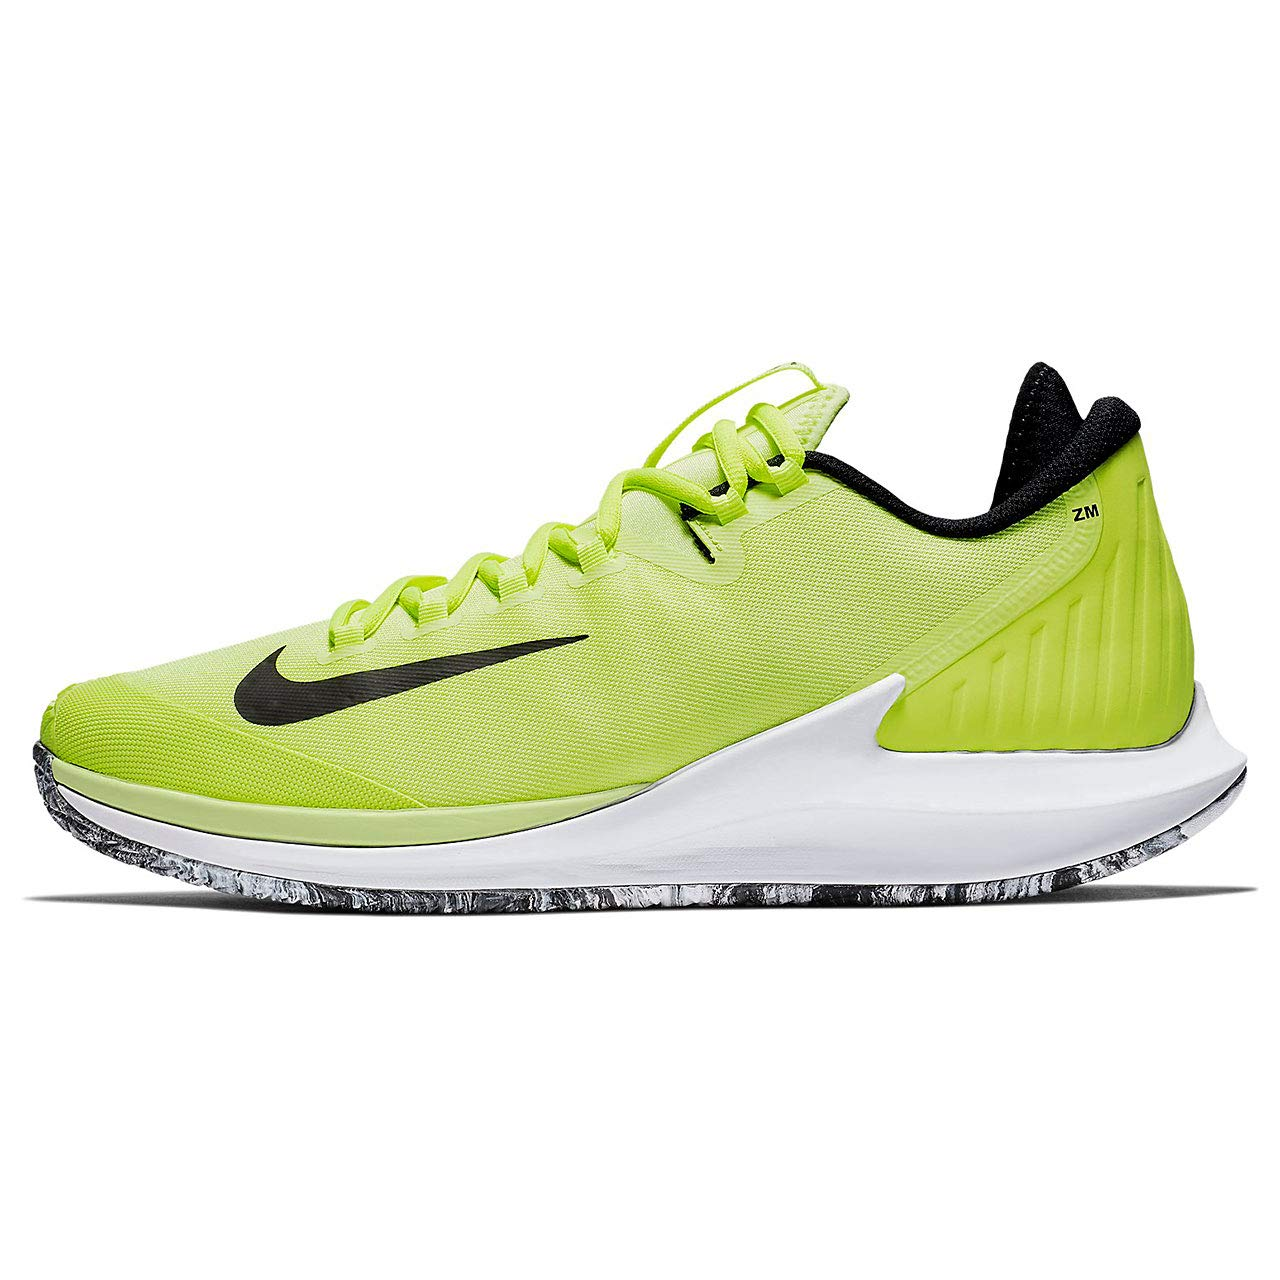 new arrival 483b8 6a1bc Amazon.com  Nikecourt Air Zoom Zero Hc PRM Mens Ao5021-700 Size 9  Shoes